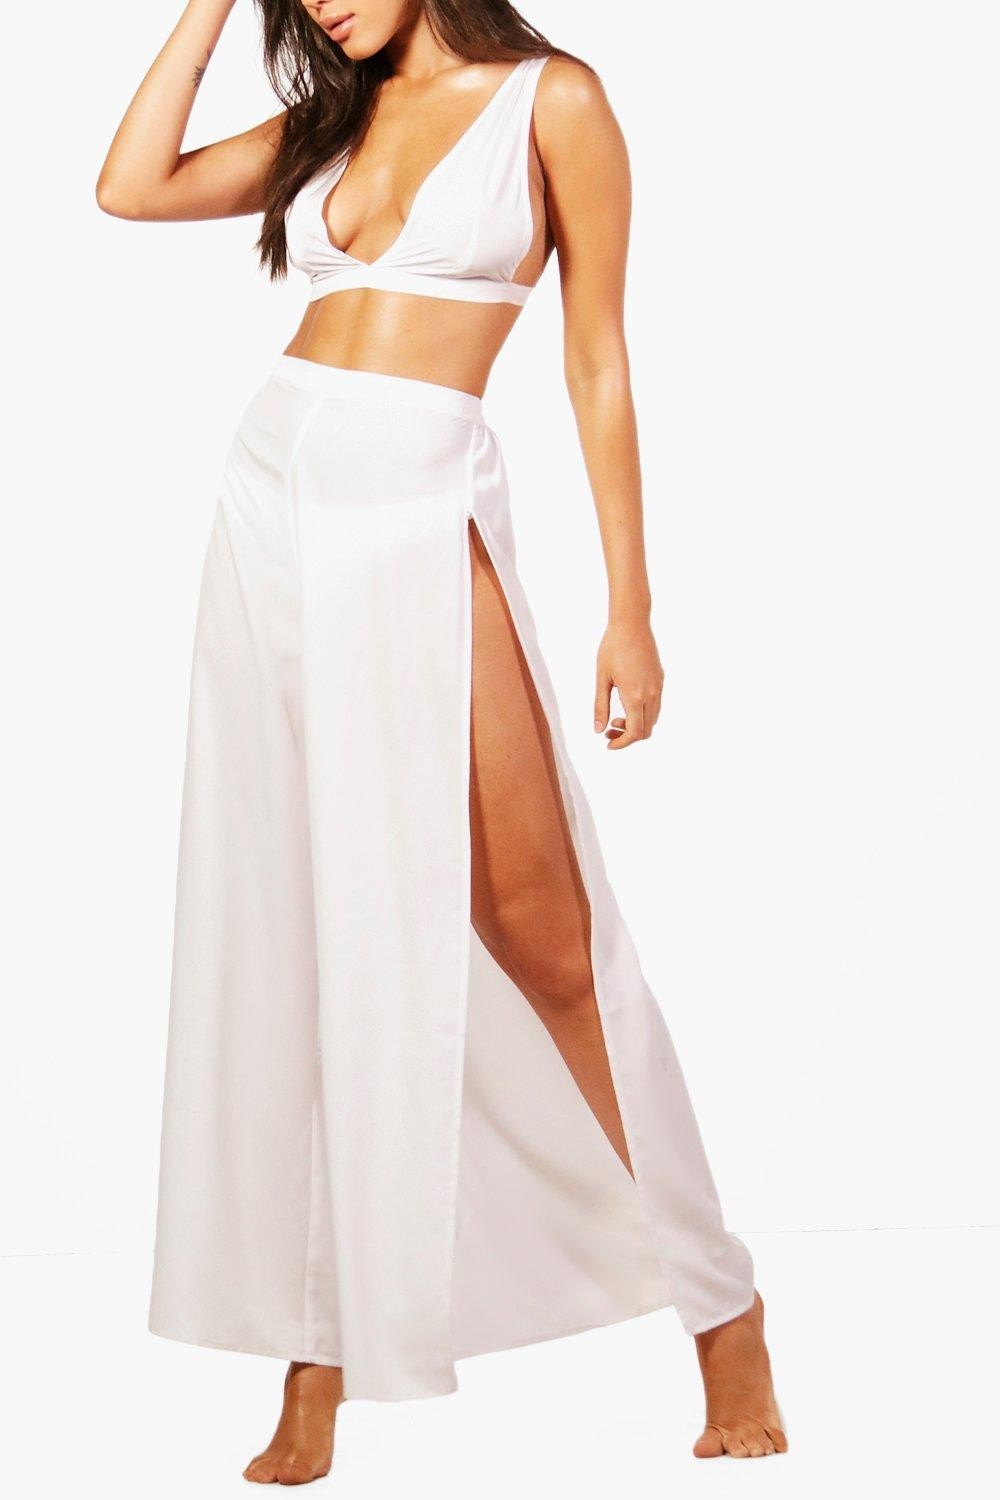 9ecf8318188 Boohoo Womens Plunge Beach Top   Trouser Co-ord in White size S